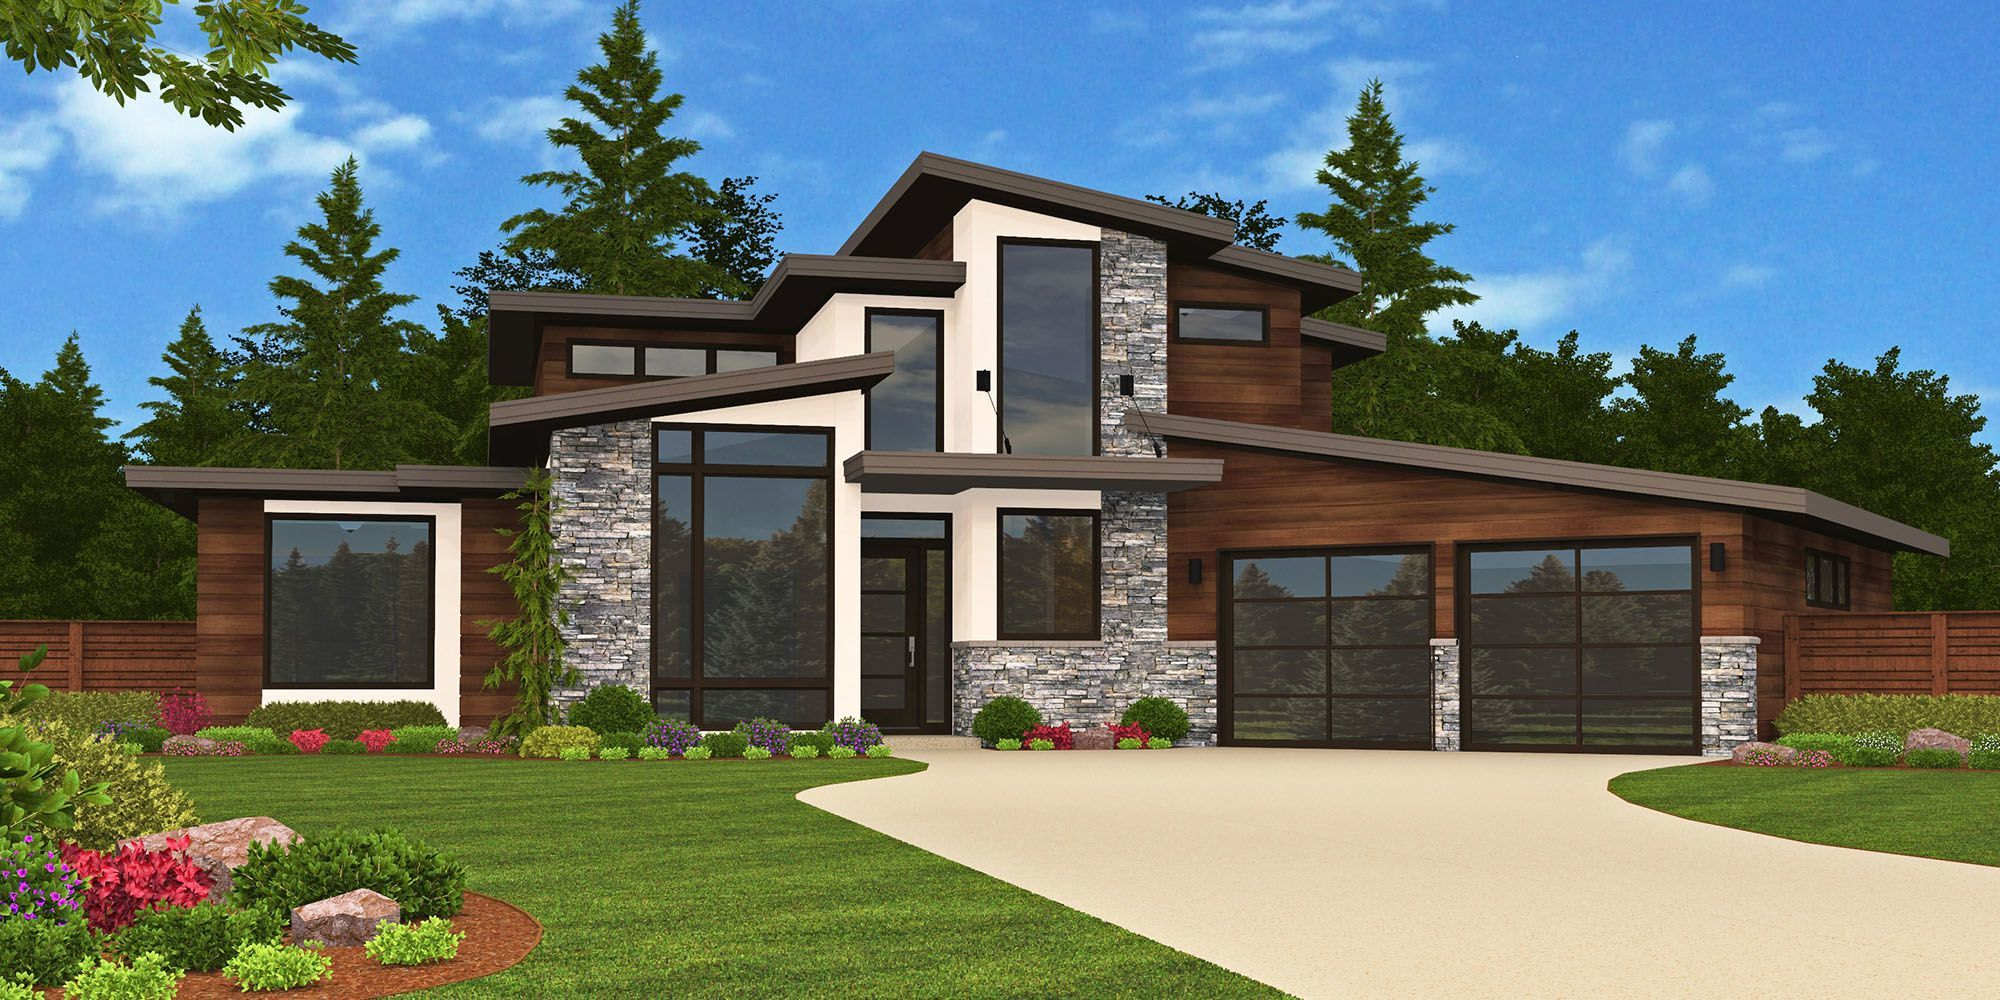 Sting x 16a house plan modern house plans for New house plans with pictures